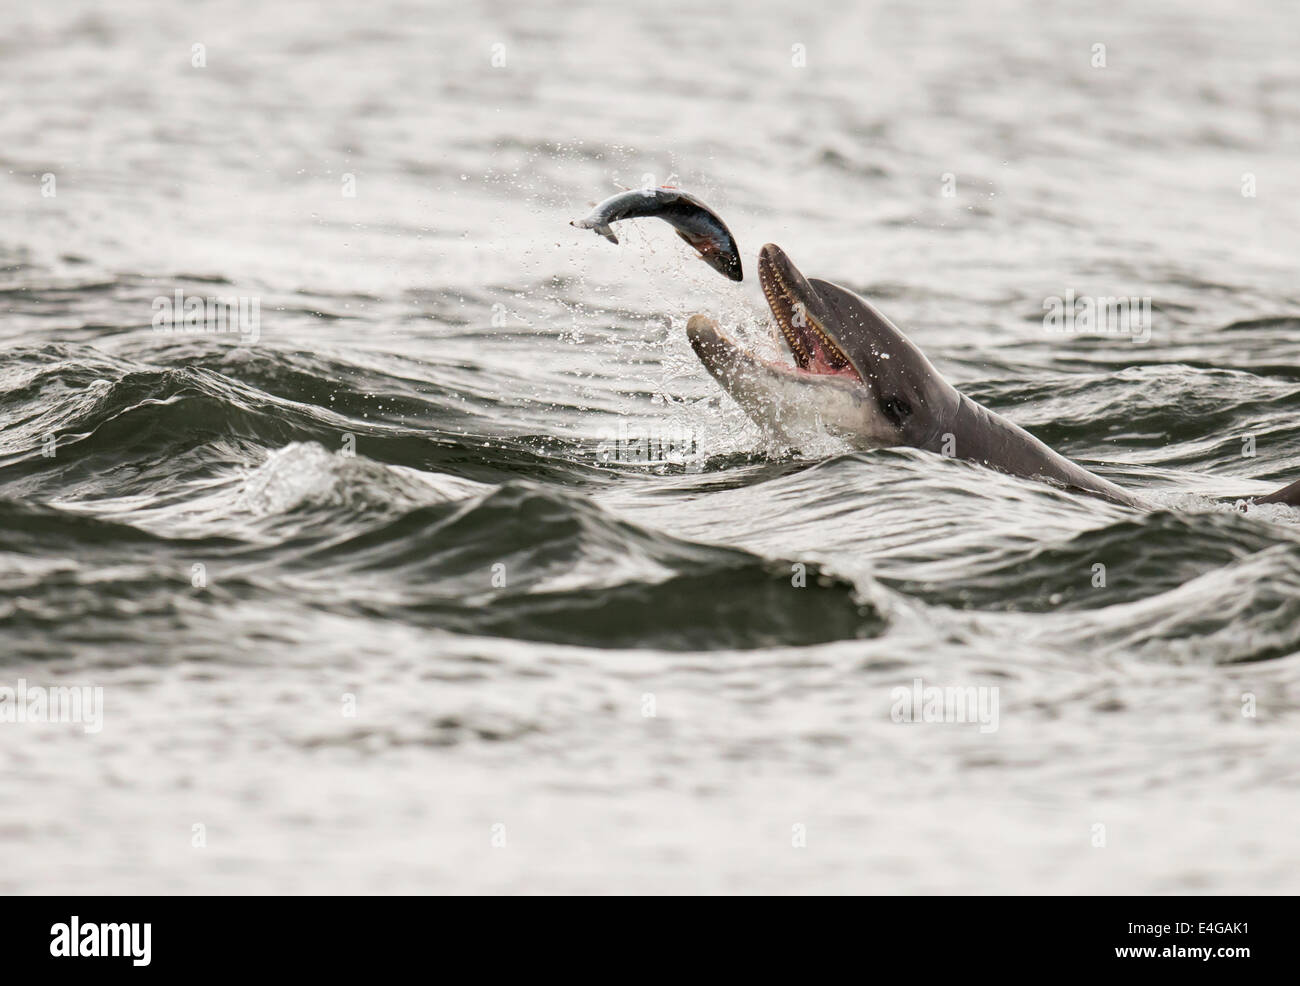 Bottlenose Dolphin with Salmon at Chanonry Point, Scotland - Stock Image